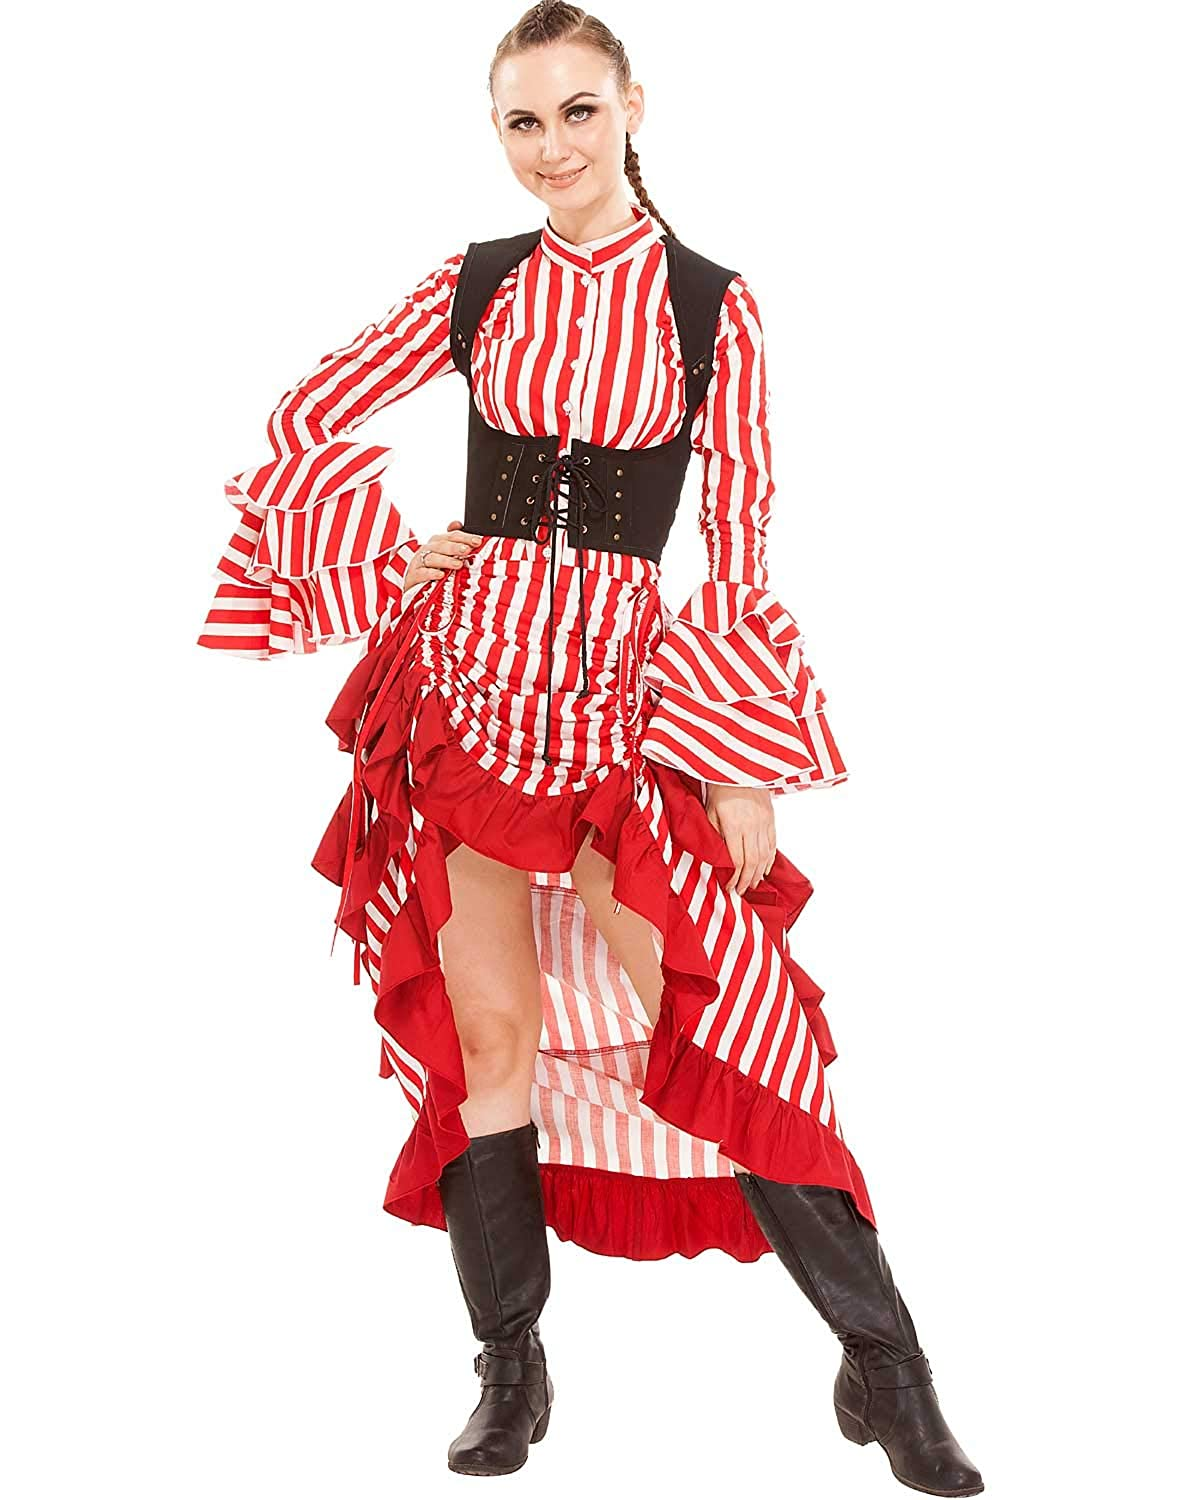 Saloon Girl Costume | Victorian Burlesque Dresses & History ThePirateDressing Steampunk Victorian Cosplay Costume Womens High-Low Show Girl Skirt C1367 $52.95 AT vintagedancer.com